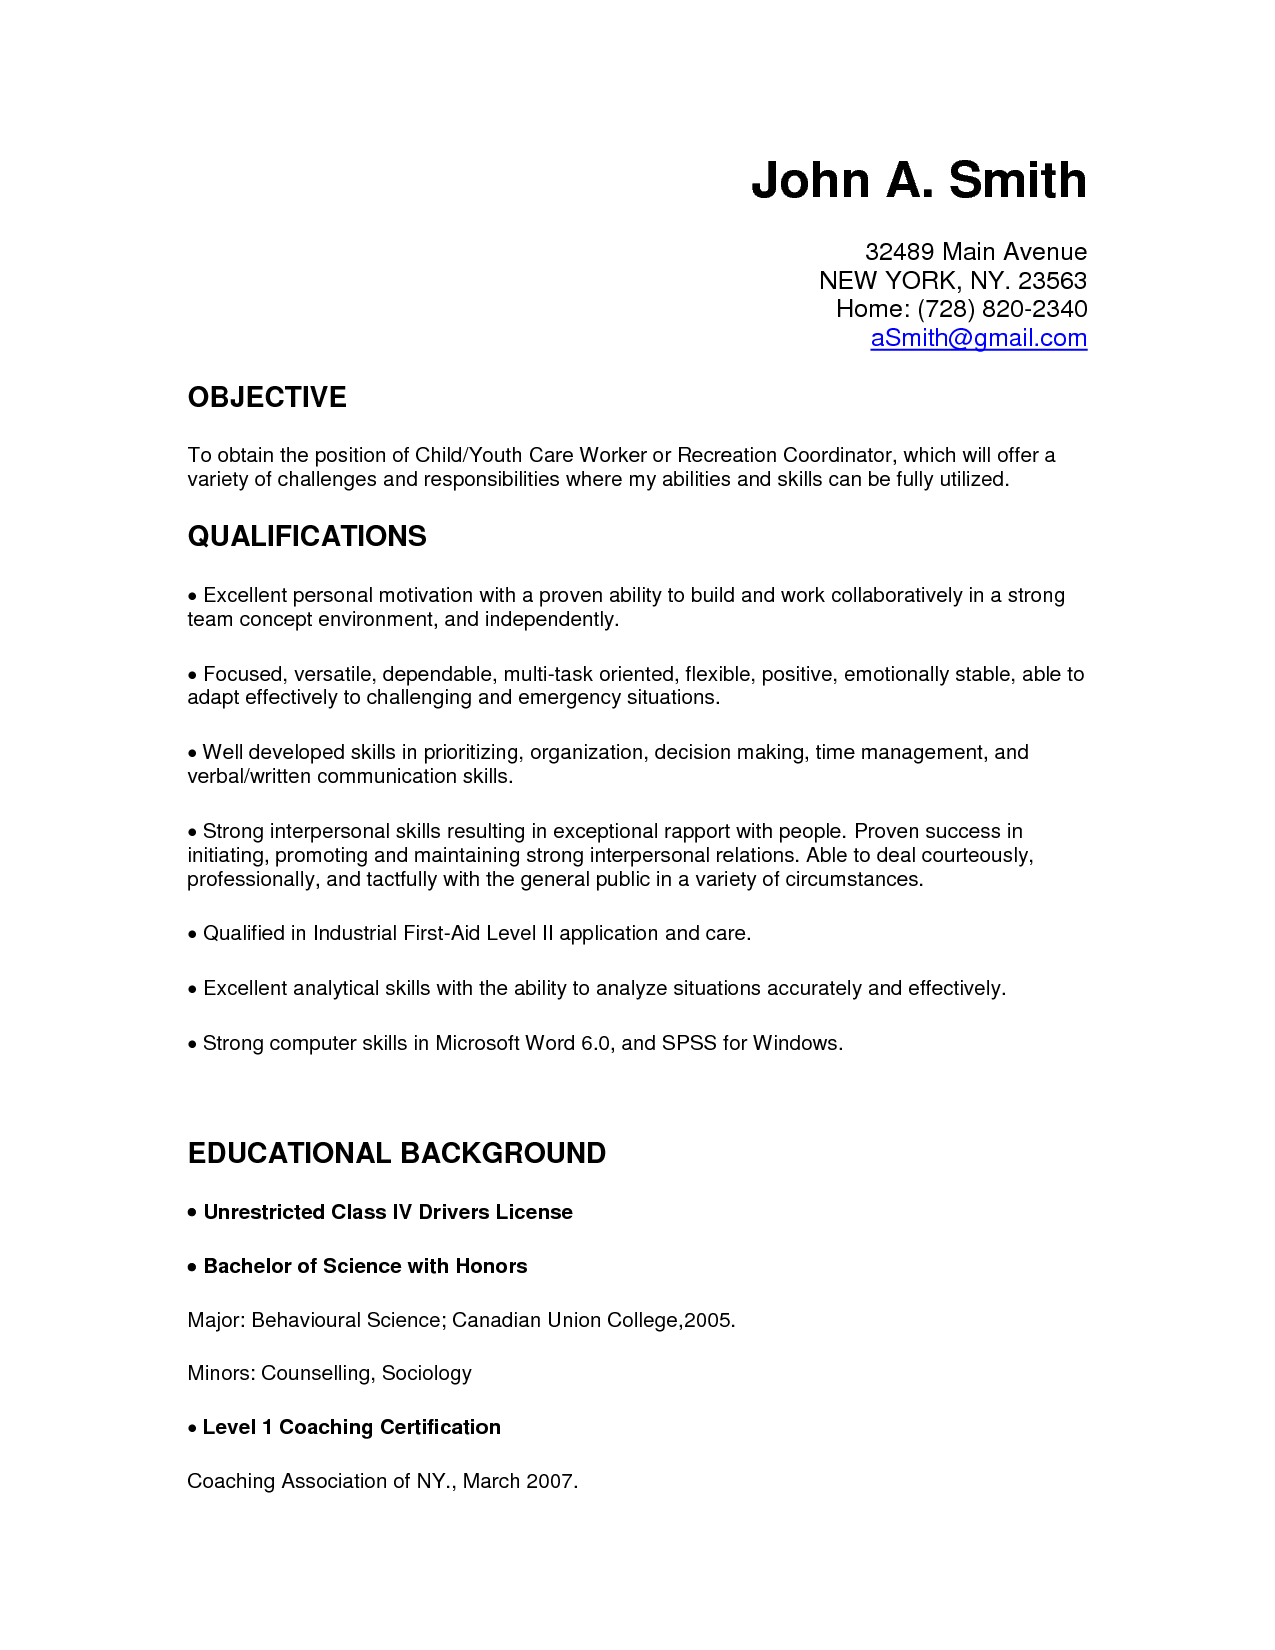 Child Care Resume Cover Letter Http Www Resumecareer Info